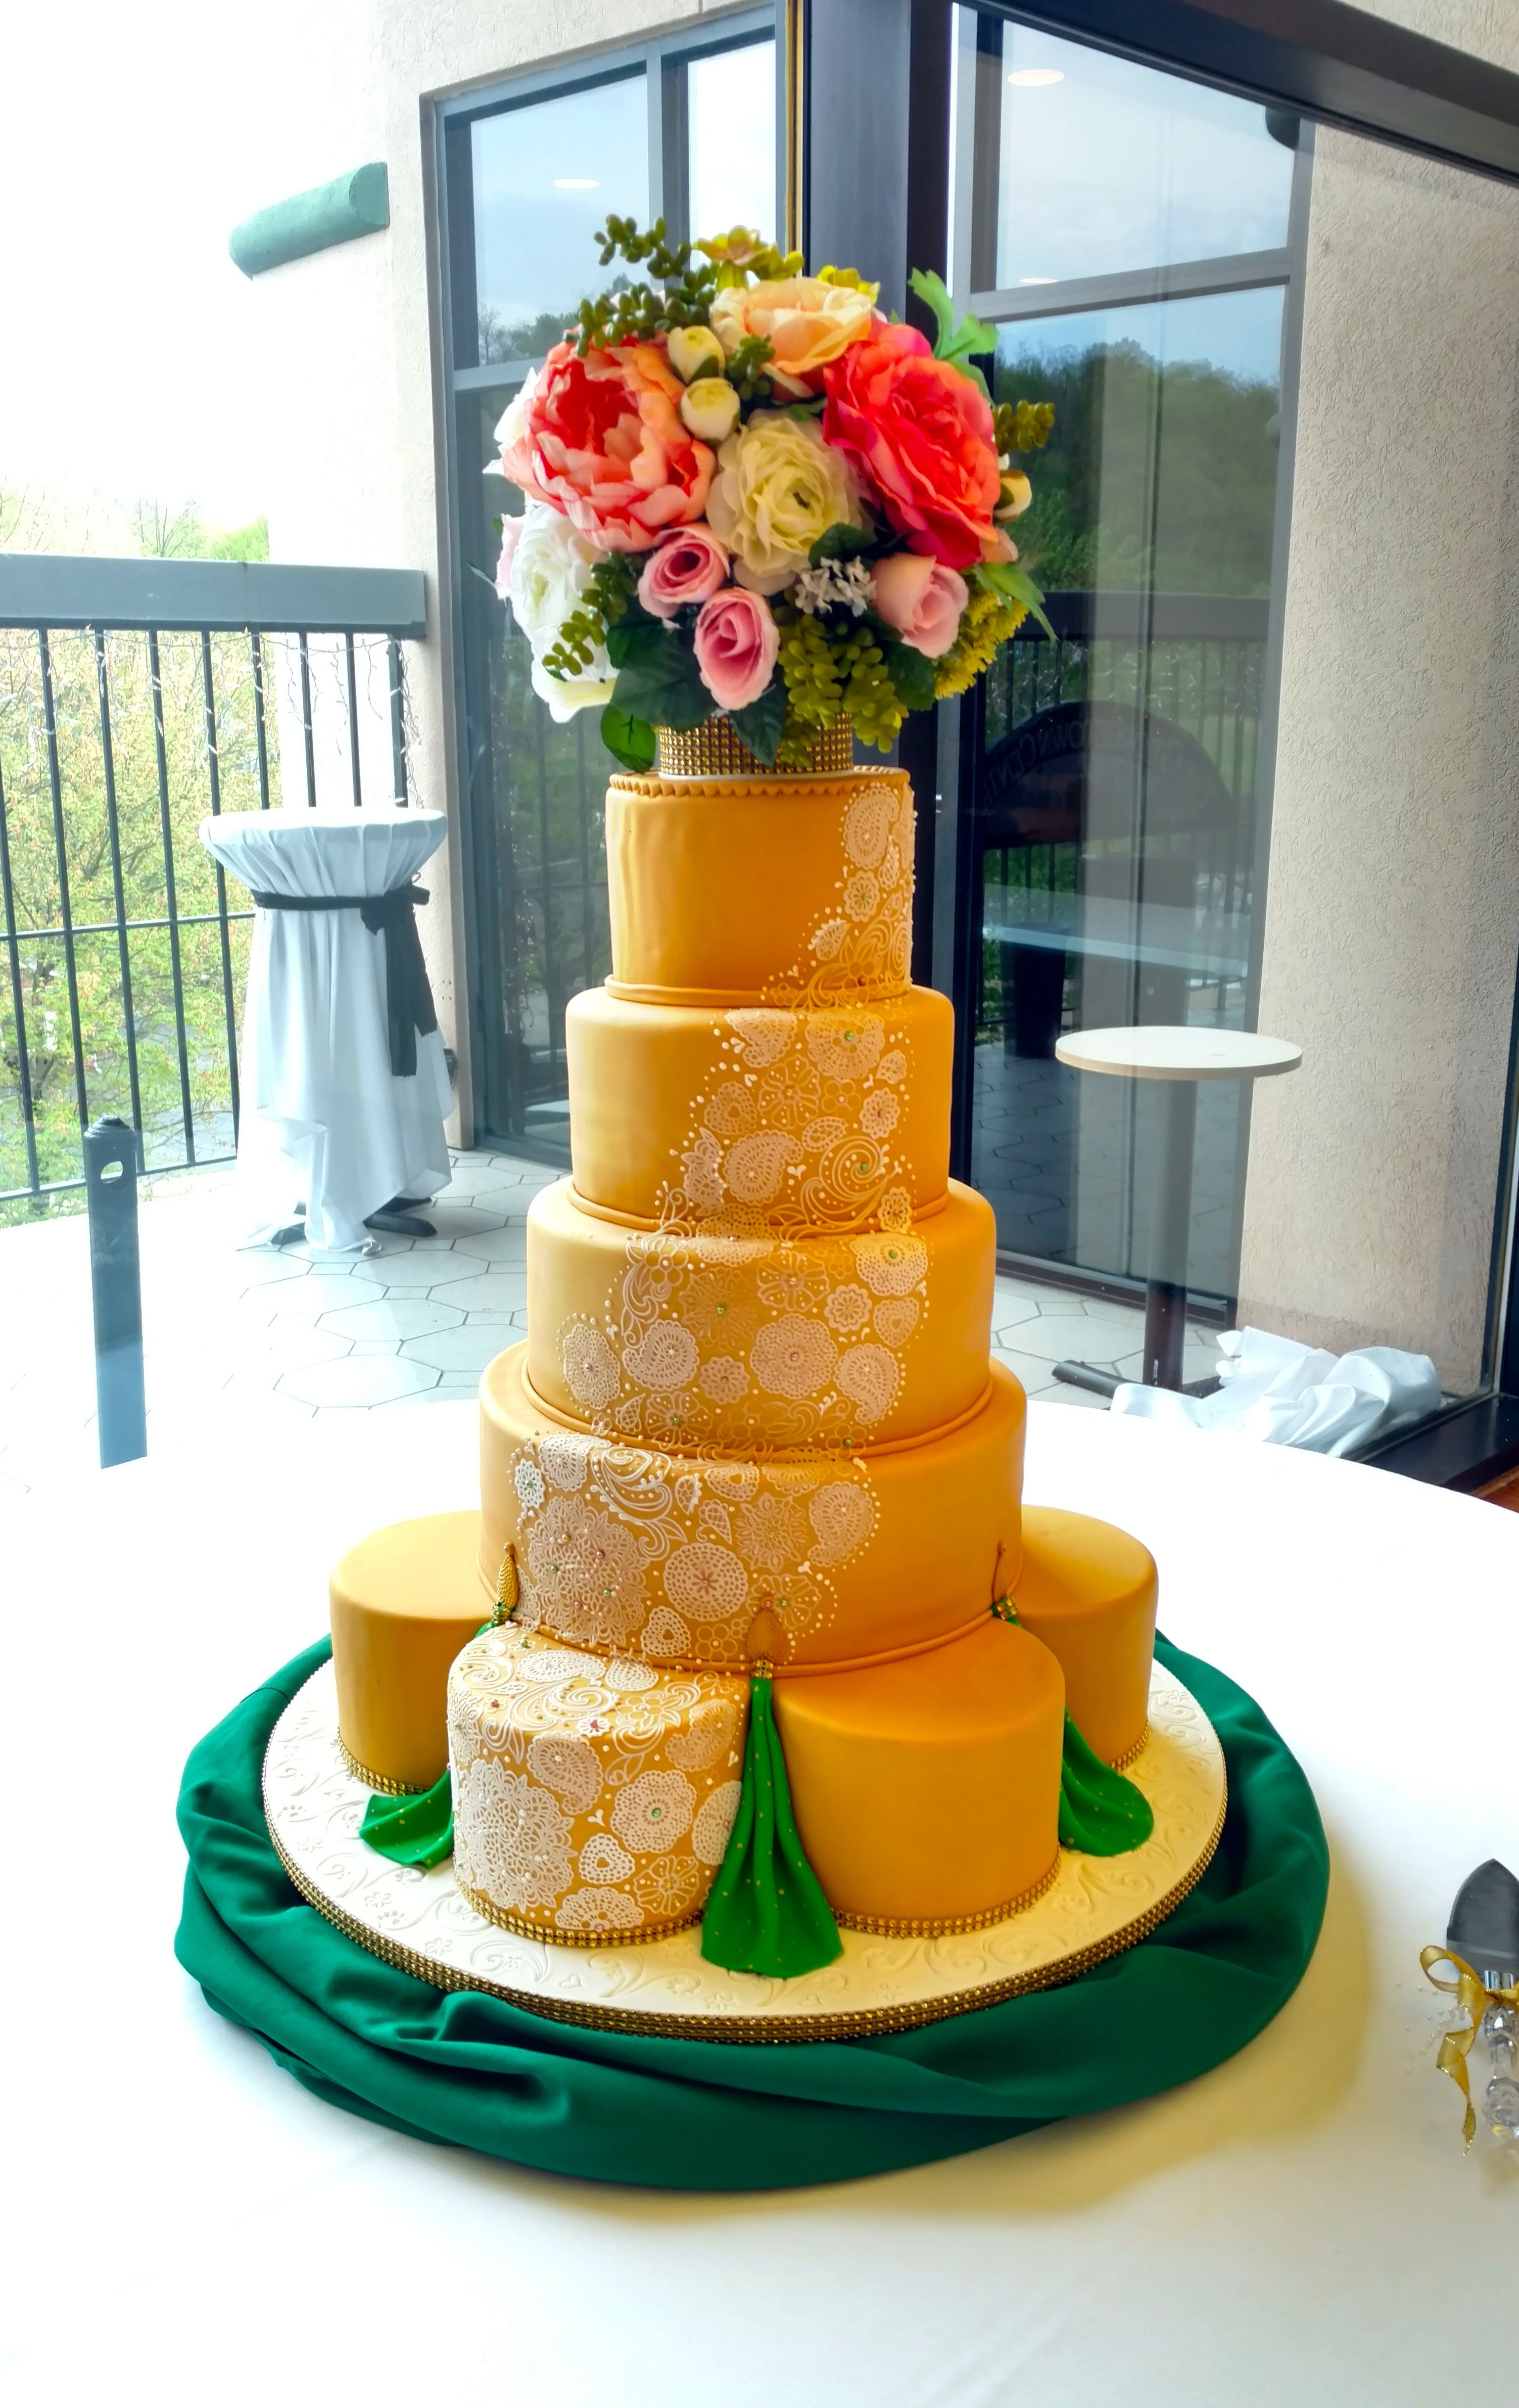 Simmi & Dave's Wedding Cake